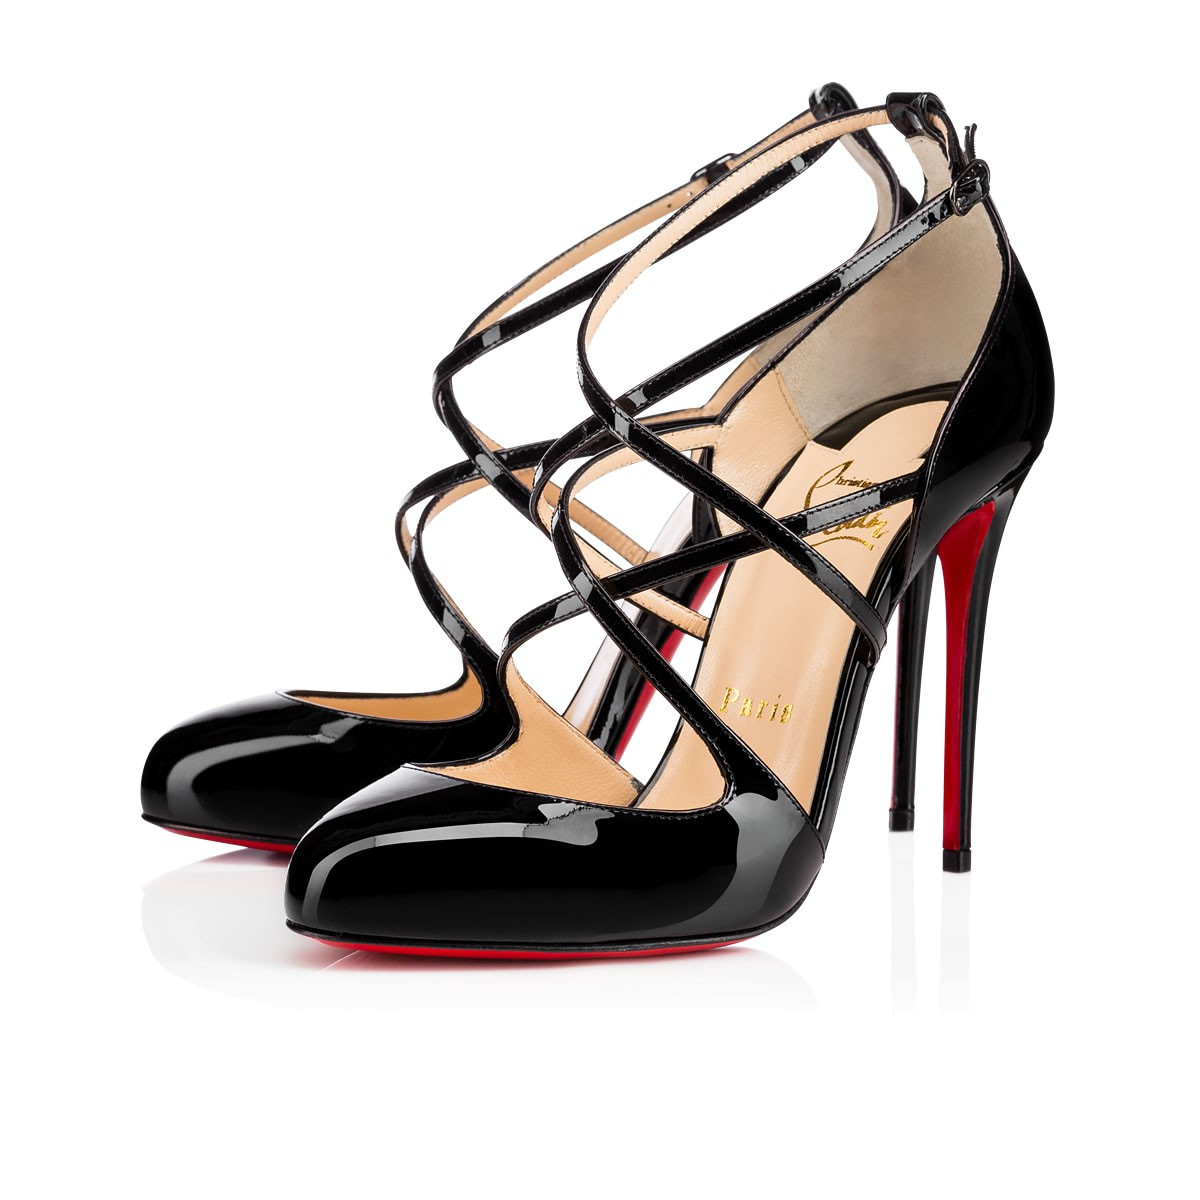 Louboutines